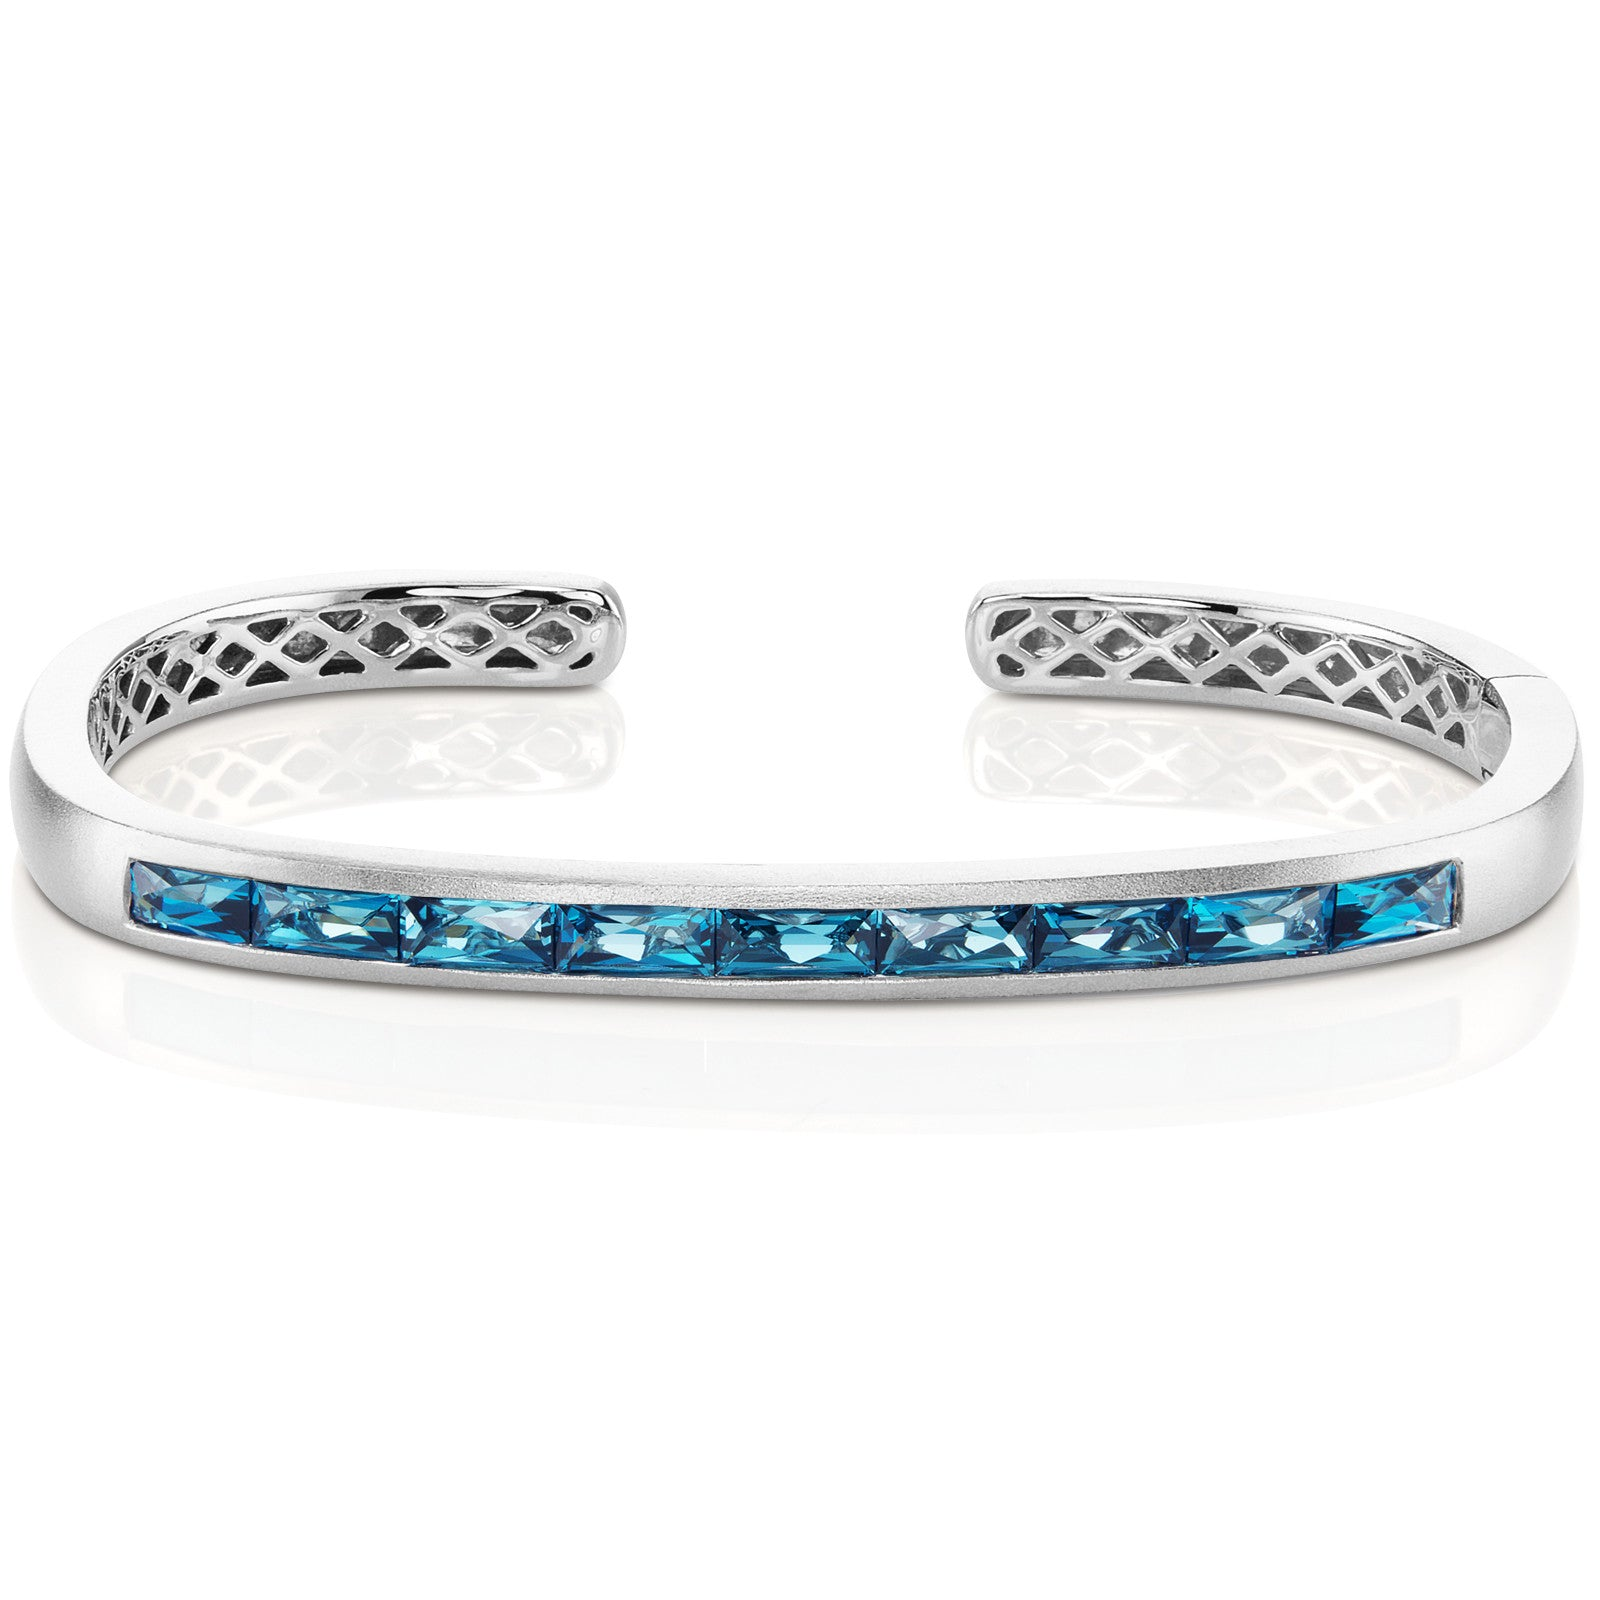 Jane Taylor Cirque Hinged Cuff London Blue Topaz Baguettes 14K White Gold